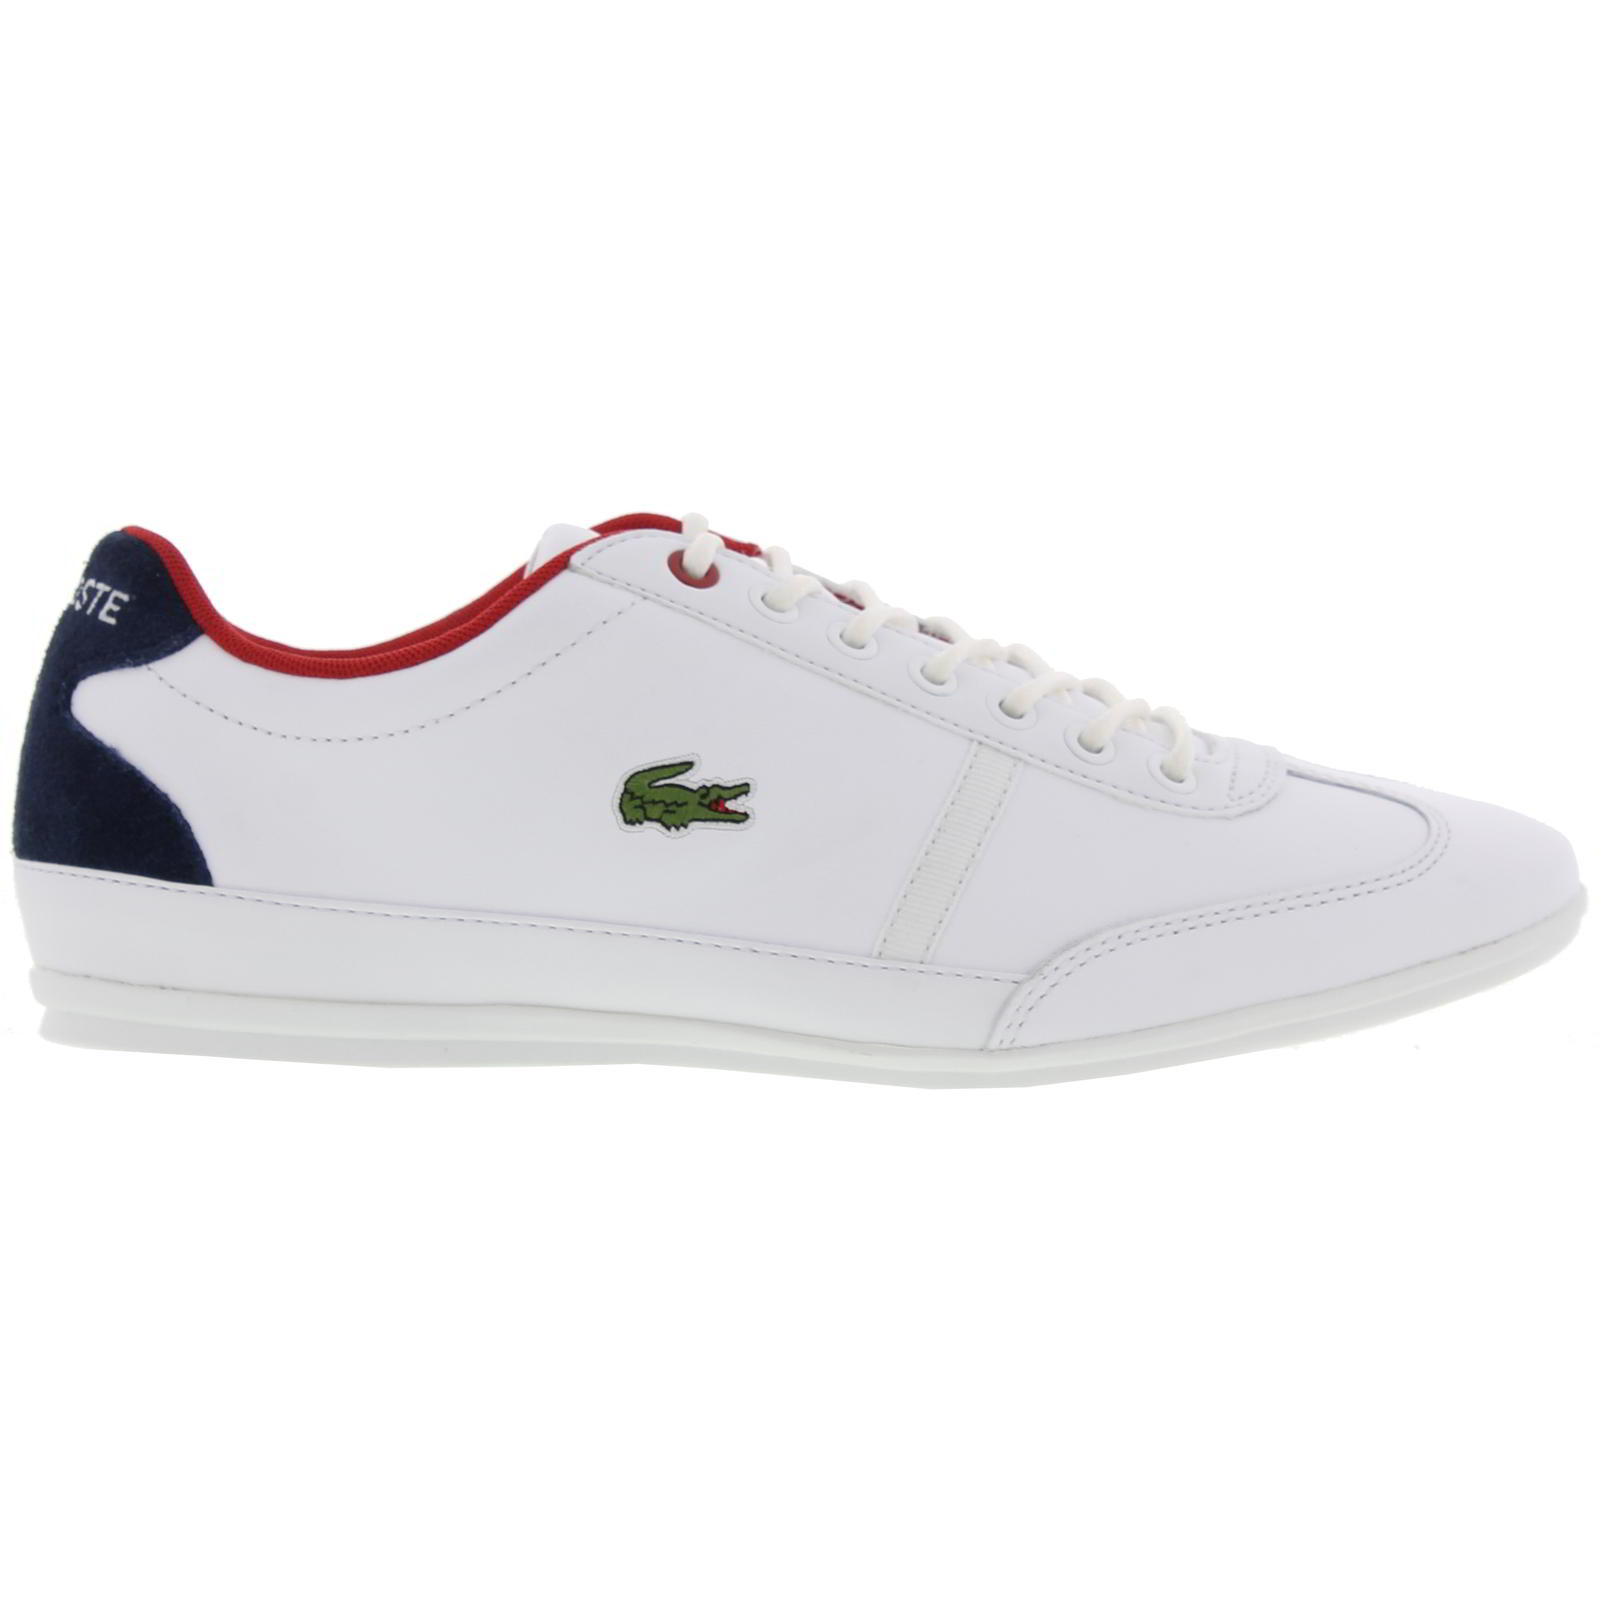 lacoste misano sport 317 1 mens white leather trainers